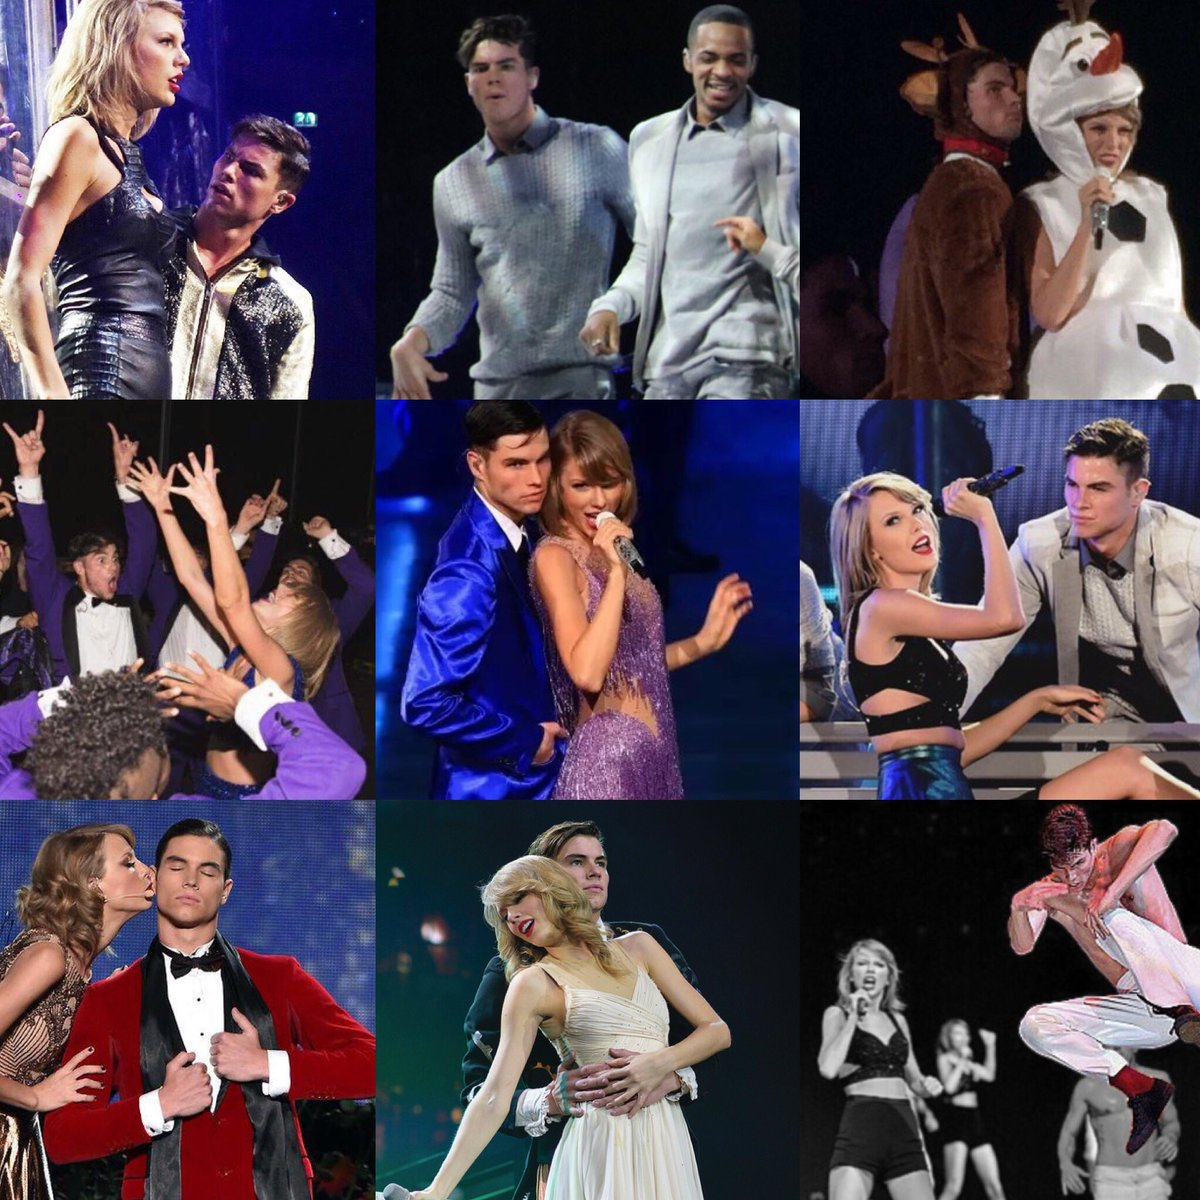 Taylor Swift News On Twitter Happy Birthday To Taylor S Talented And Witty Dancer Mase Cut Who S Been With Her On The Red Tour And 1989 Tour